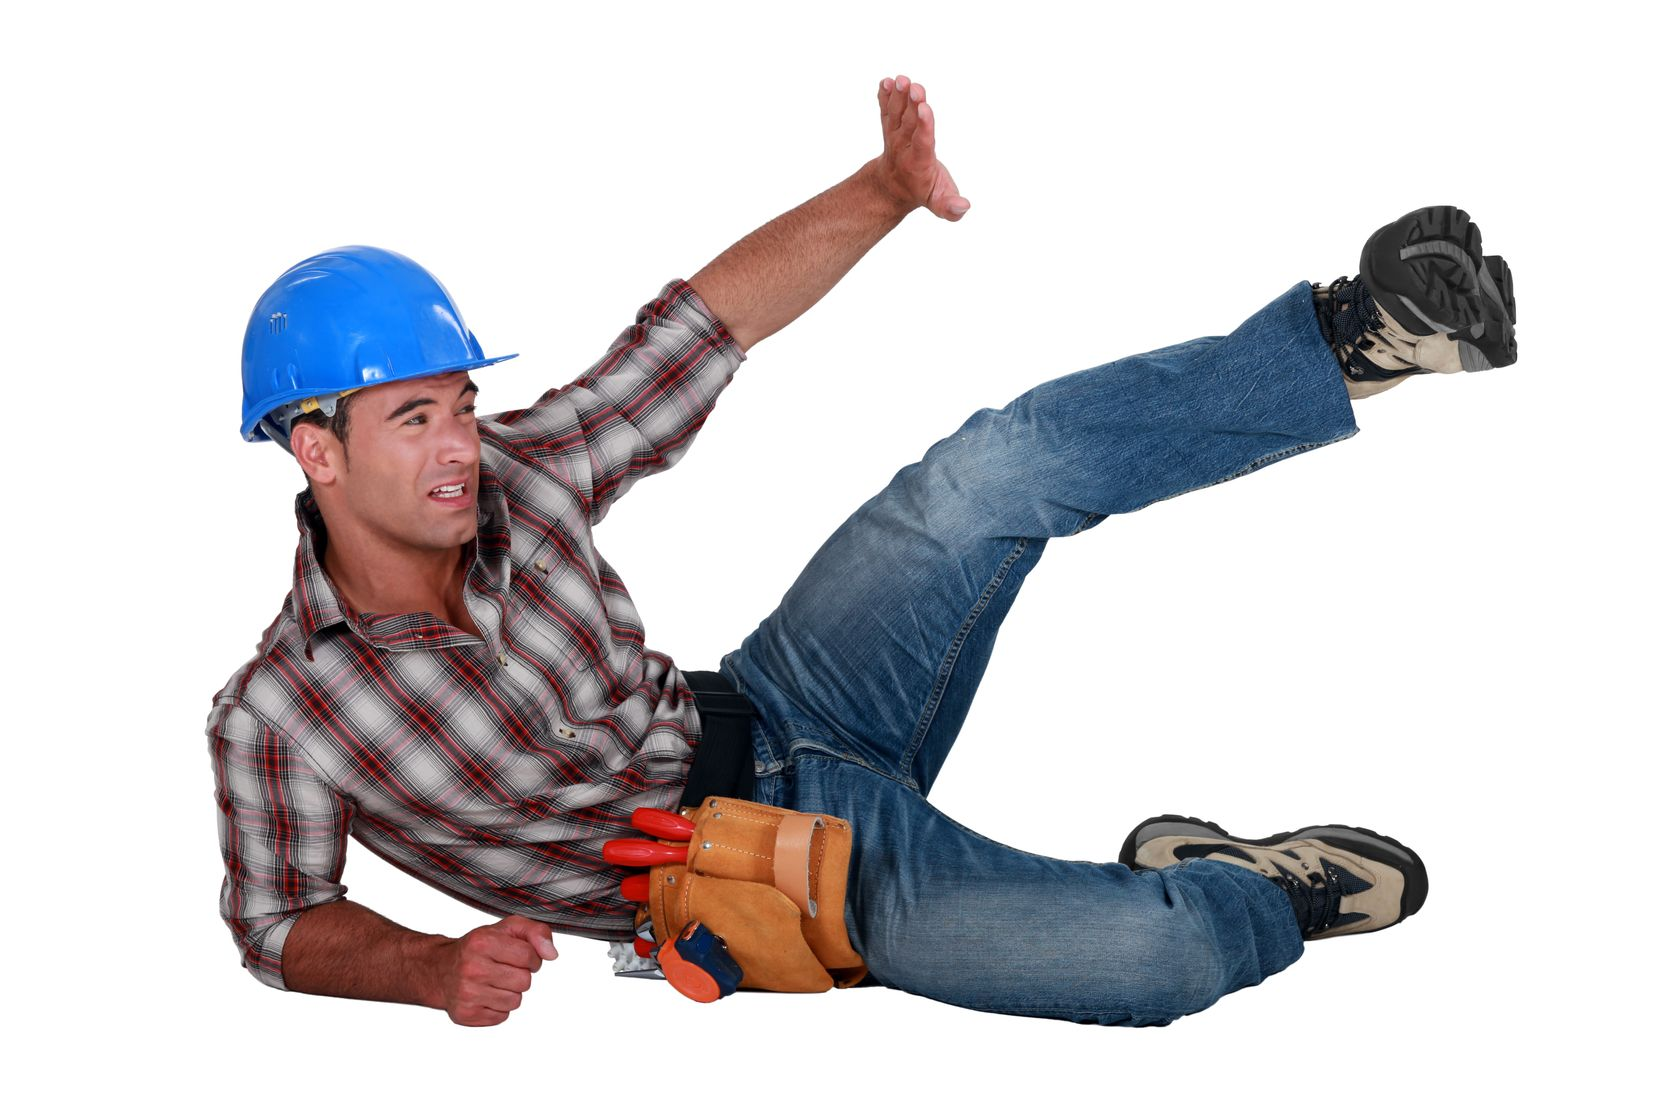 DFW, TX. Workers Comp Insurance